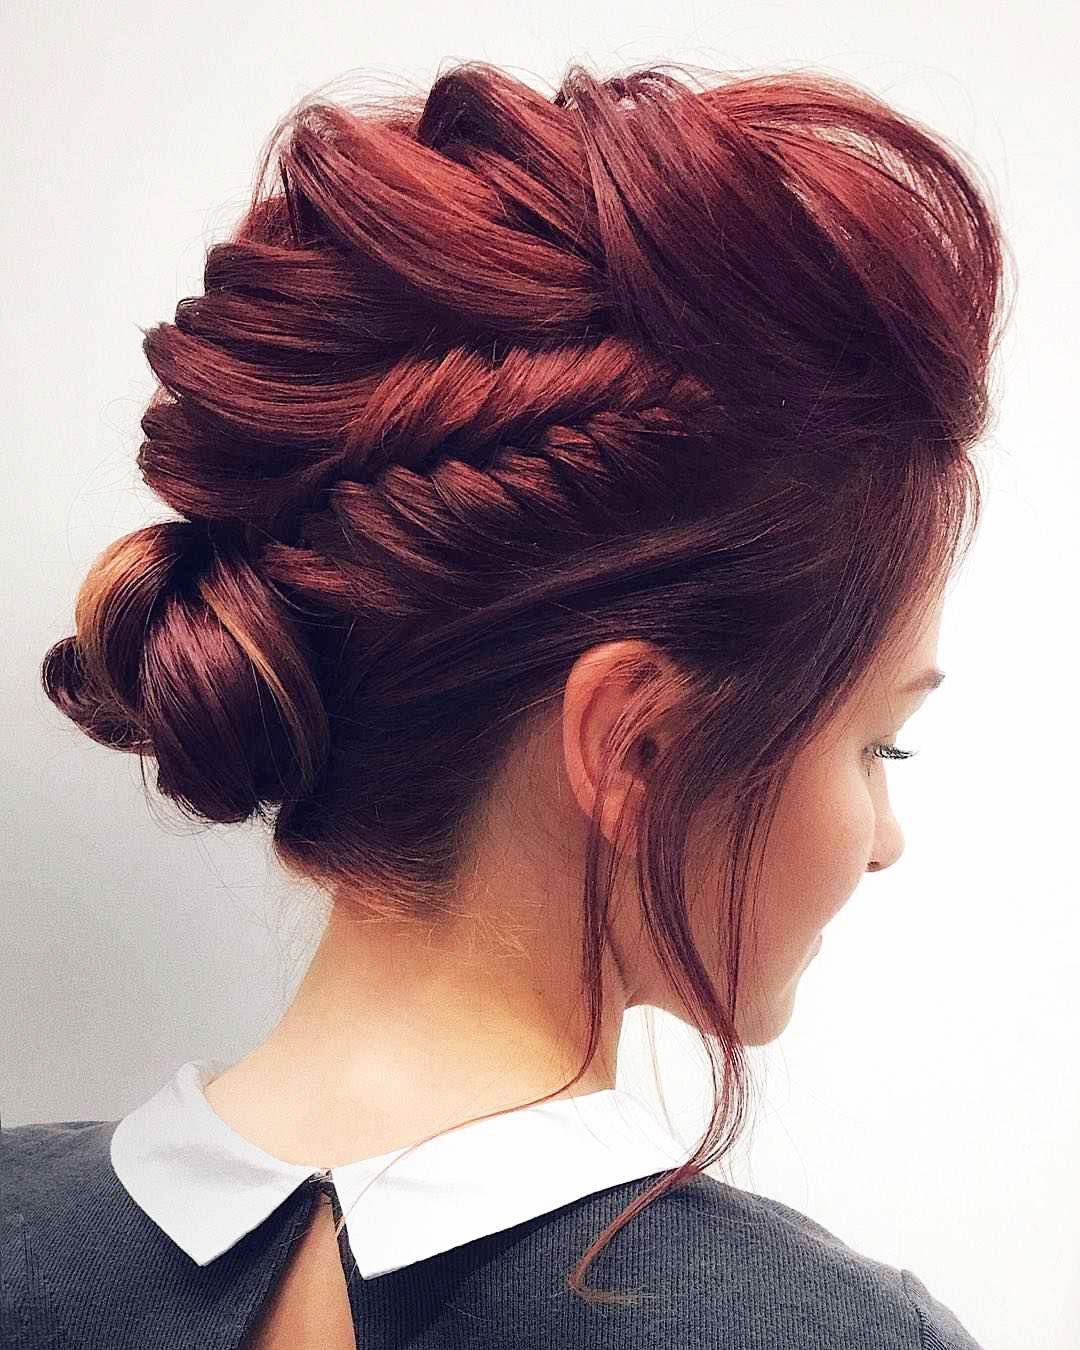 Hairstyles for prom for medium hair 2019-2020 photo 16